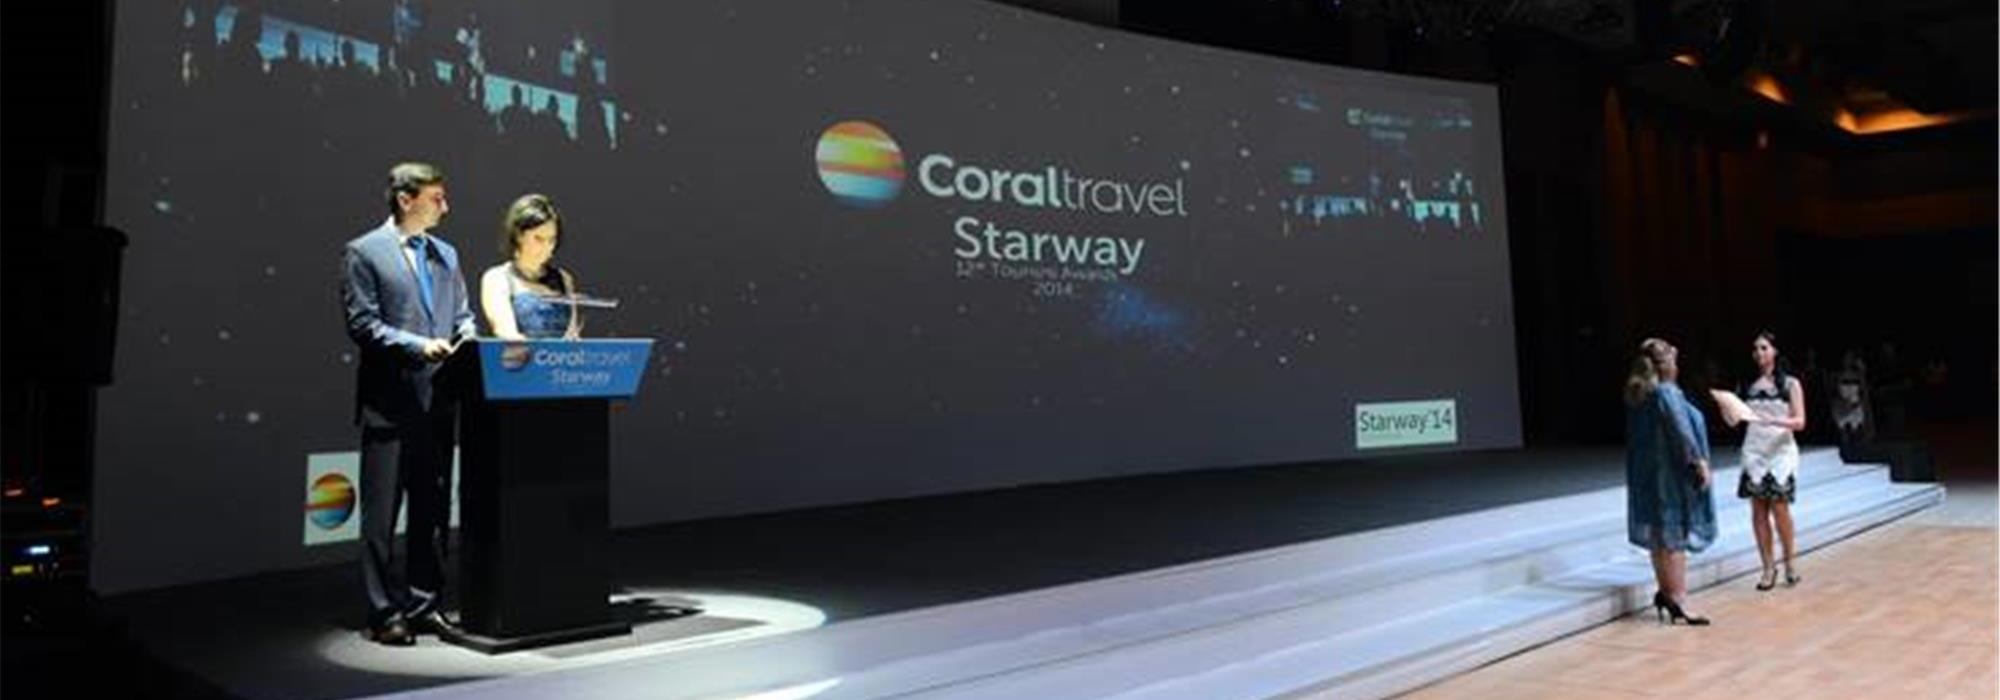 STARWAY XII. TOURISM AWARDS